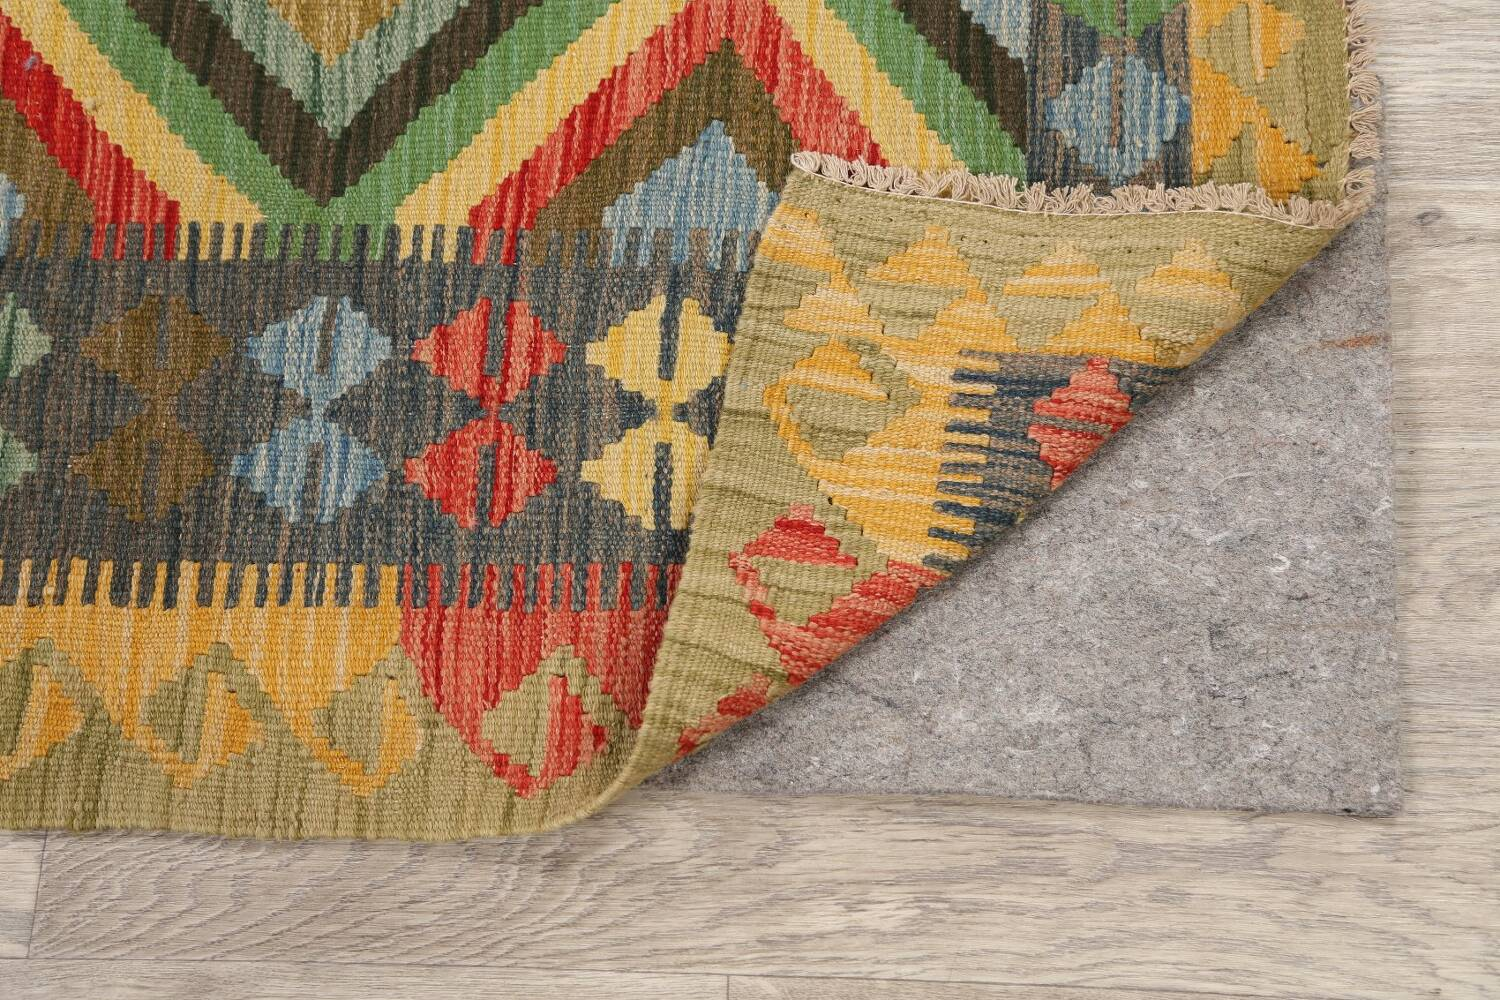 South-Western Reversible Kilim Oriental Area Rug 3x3 Square image 7